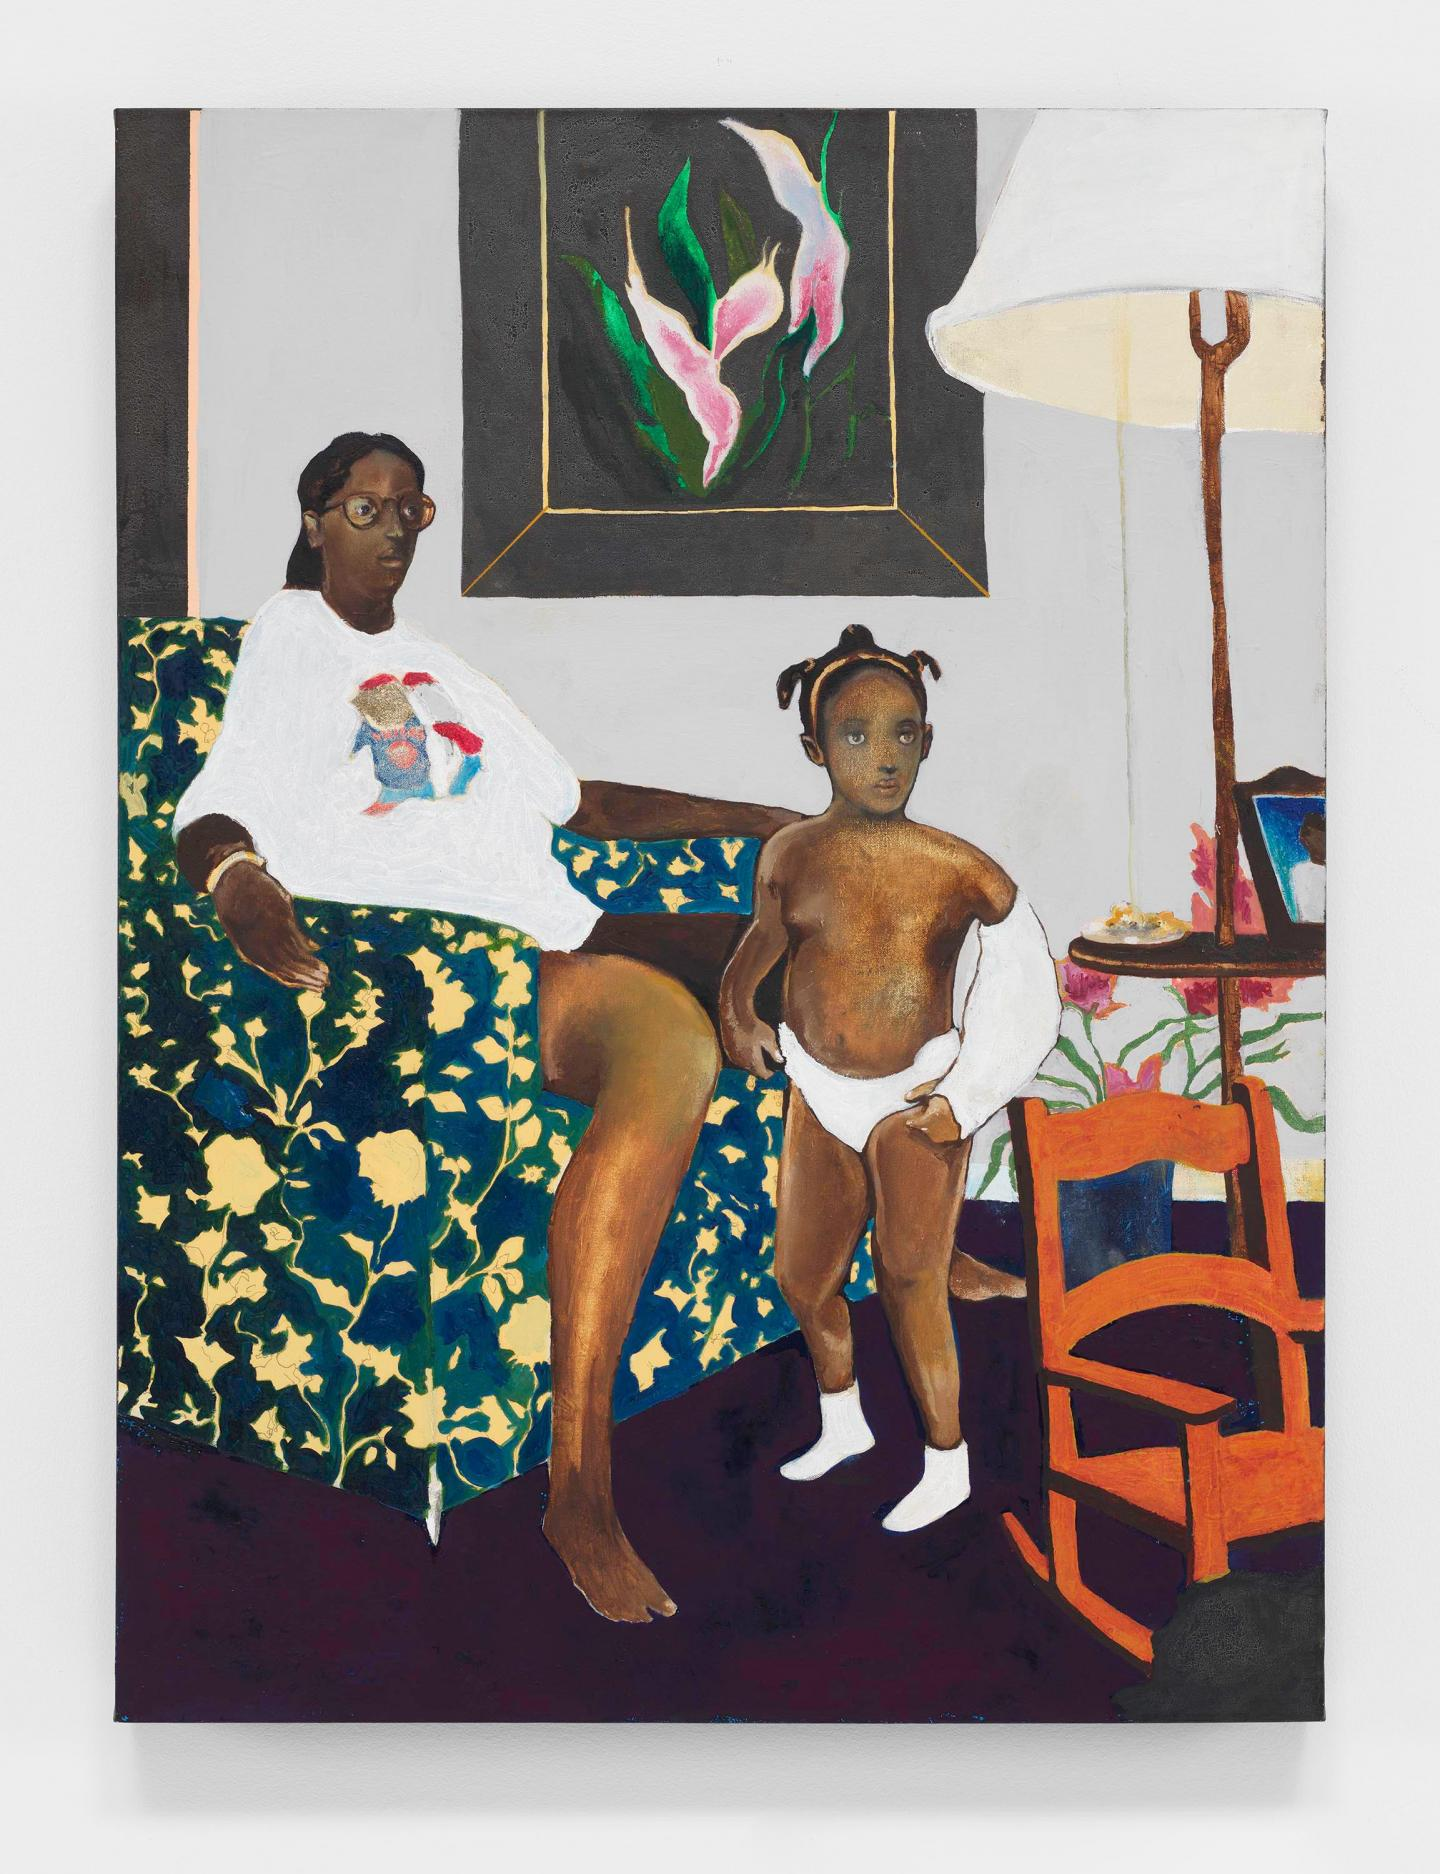 Noah Davis, Single Mother with Father Out of the Picture, olil, acrylic and graphite on canvas, 102 × 77 cm, 2007–2008. Courtesy and © the artist and The Estate of Noah Davis